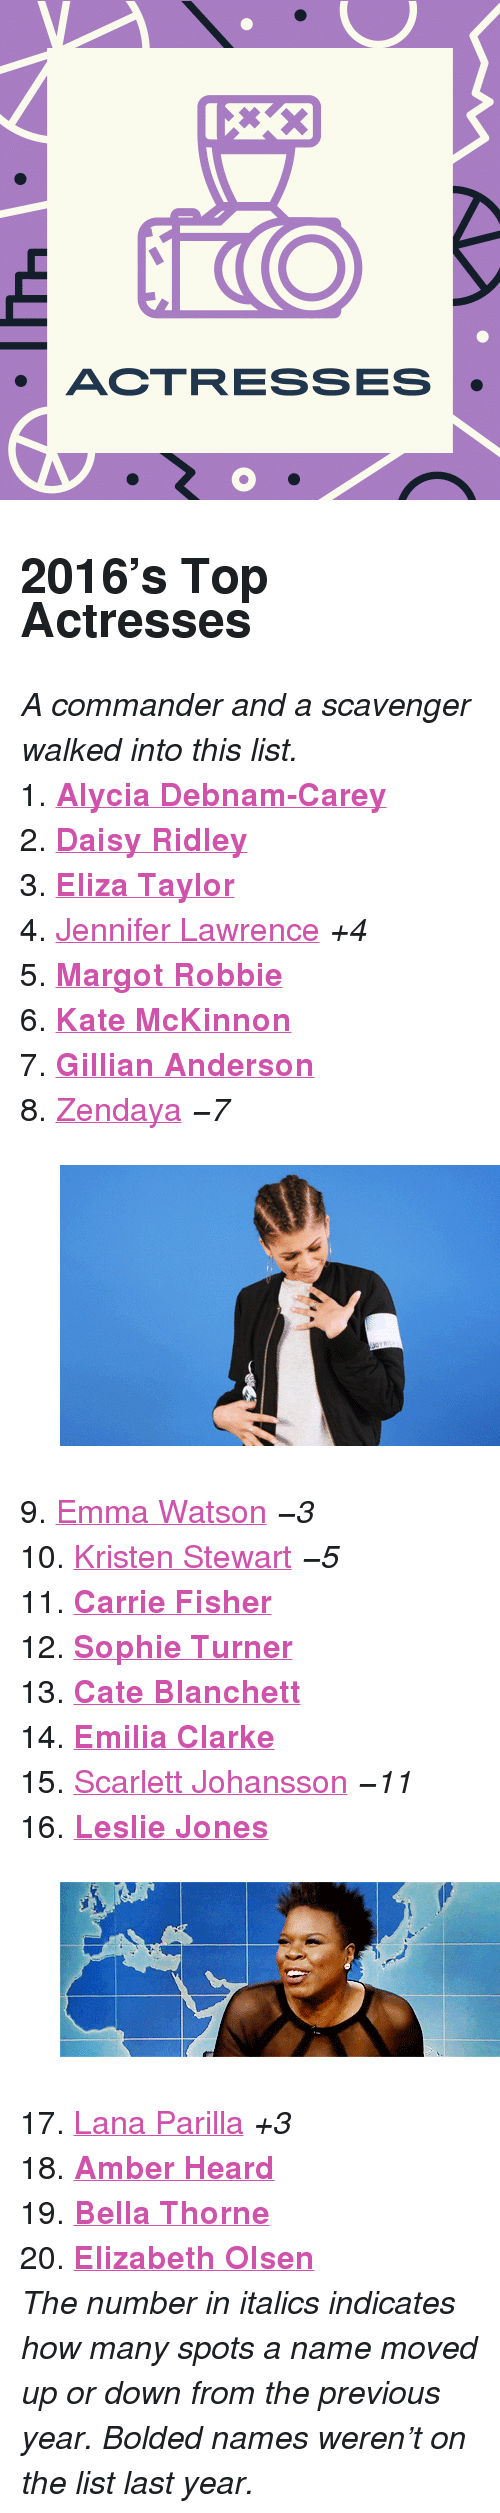 """Kristen Stewart: ACTRESSES <h2>2016&rsquo;s Top Actresses</h2><p><i>A commander and a scavenger walked into this list.</i></p><p>1. <b><a href=""""http://www.tumblr.com/search/alycia%20debnam%20carey"""">Alycia Debnam-Carey</a><br/></b>2. <b><a href=""""http://www.tumblr.com/search/daisy%20ridley"""">Daisy Ridley</a><br/></b>3. <b><a href=""""http://www.tumblr.com/search/eliza%20taylor"""">Eliza Taylor</a><br/></b>4. <a href=""""http://www.tumblr.com/search/jennifer%20lawrence"""">Jennifer Lawrence</a><i> +4<br/></i>5. <b><a href=""""http://www.tumblr.com/search/margot%20robbie"""">Margot Robbie</a><br/></b>6. <b><a href=""""http://www.tumblr.com/search/kate%20mckinnon"""">Kate McKinnon</a><br/></b>7. <b><a href=""""http://www.tumblr.com/search/gillian%20anderson"""">Gillian Anderson</a><br/></b>8. <a href=""""http://www.tumblr.com/search/zendaya"""">Zendaya</a><i> −7</i></p><figure data-orig-width=""""500"""" data-orig-height=""""281"""" data-tumblr-attribution=""""yesiamarebelliousflower:QPjbAFczSlTJBIAE-D28zg:Z3ksKq1pJnuj6"""" class=""""tmblr-full""""><img src=""""https://78.media.tumblr.com/52a3f65a5e61ef3348ad0f7a5b400152/tumblr_nrbxjyoBzy1sjc5sqo1_500.gif"""" alt=""""image"""" data-orig-width=""""500"""" data-orig-height=""""281""""/></figure><p>9. <a href=""""http://www.tumblr.com/search/emma%20watson"""">Emma Watson</a><i> −3<br/></i>10. <a href=""""http://www.tumblr.com/search/kristen%20stewart"""">Kristen Stewart</a><i> −5<br/></i>11. <b><a href=""""http://www.tumblr.com/search/carrie%20fisher"""">Carrie Fisher</a><br/></b>12. <b><a href=""""http://www.tumblr.com/search/sophie%20turner"""">Sophie Turner</a><br/></b>13. <b><a href=""""http://www.tumblr.com/search/cate%20blanchett"""">Cate Blanchett</a><br/></b>14. <b><a href=""""http://www.tumblr.com/search/emilia%20clarke"""">Emilia Clarke</a><br/></b>15. <a href=""""http://www.tumblr.com/search/scarlett%20johansson"""">Scarlett Johansson</a><i> −11<br/></i>16. <b><a href=""""http://www.tumblr.com/search/leslie%20jones"""">Leslie Jones</a></b></p><figure data-orig-width=""""500"""" data-orig-height=""""175"""" data-tumblr-attribution=""""papermagazine:oo5KNGcUX_"""